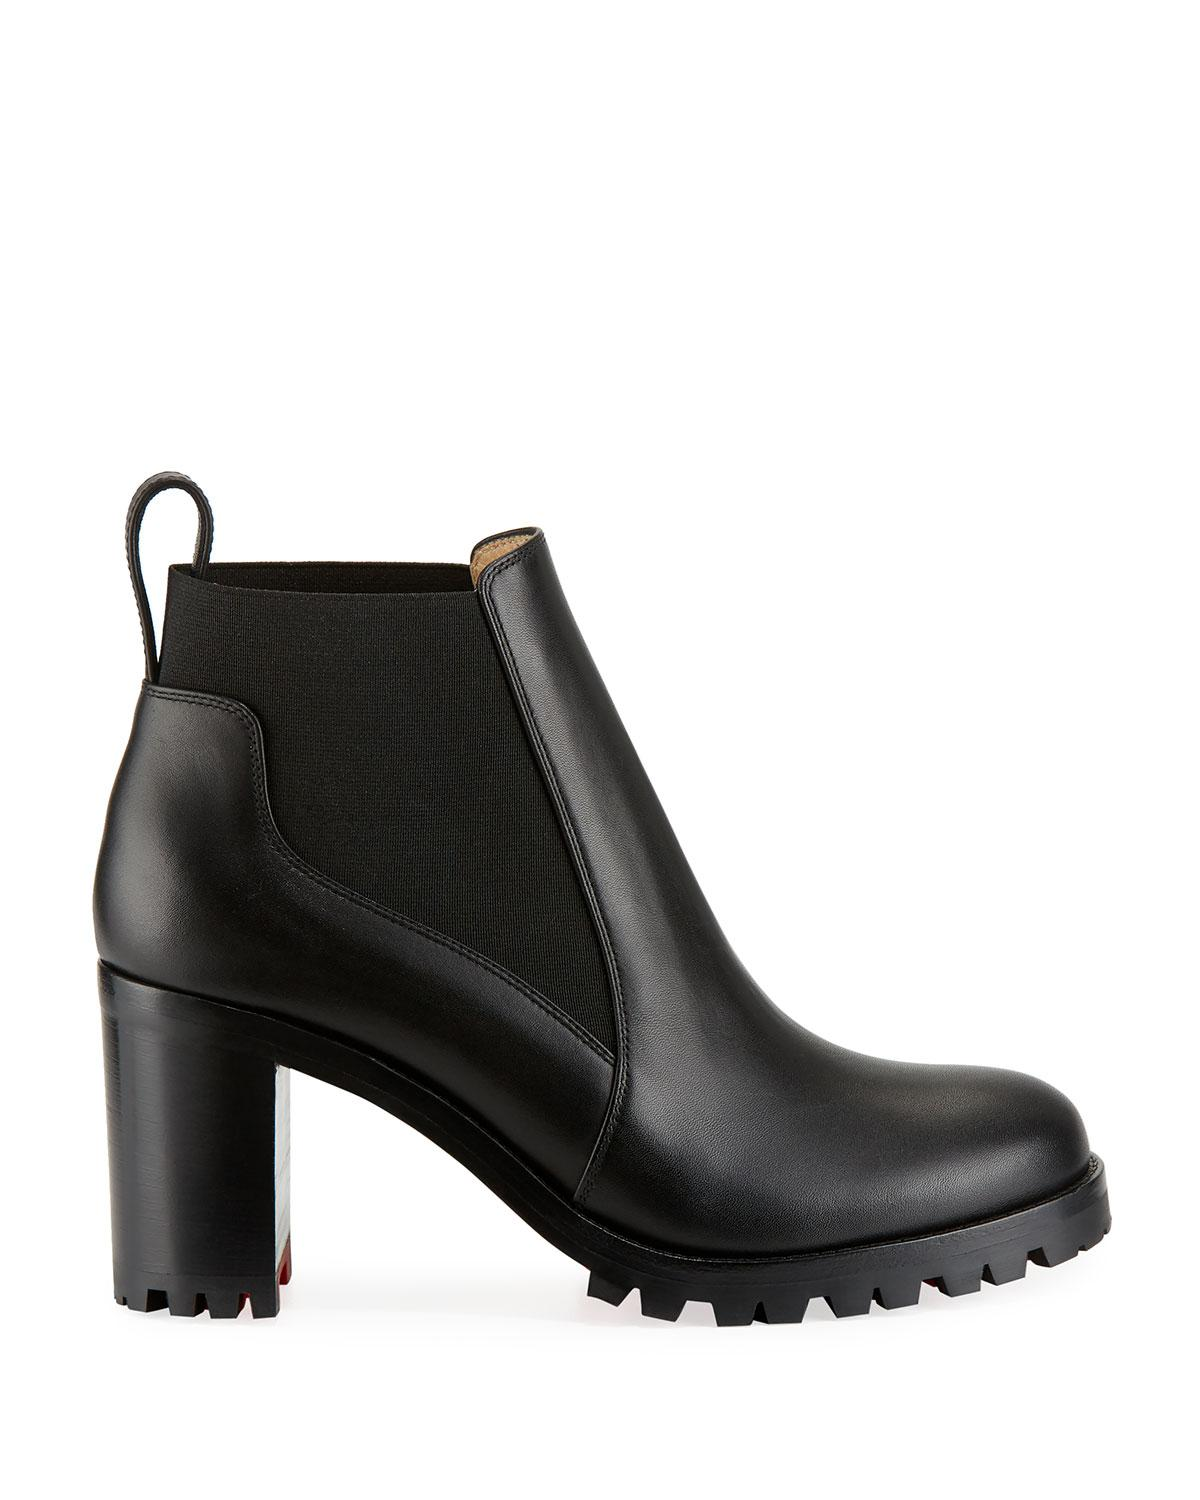 e466039088fa Christian Louboutin Marchacroche Leather Red Sole Booties in Black - Lyst